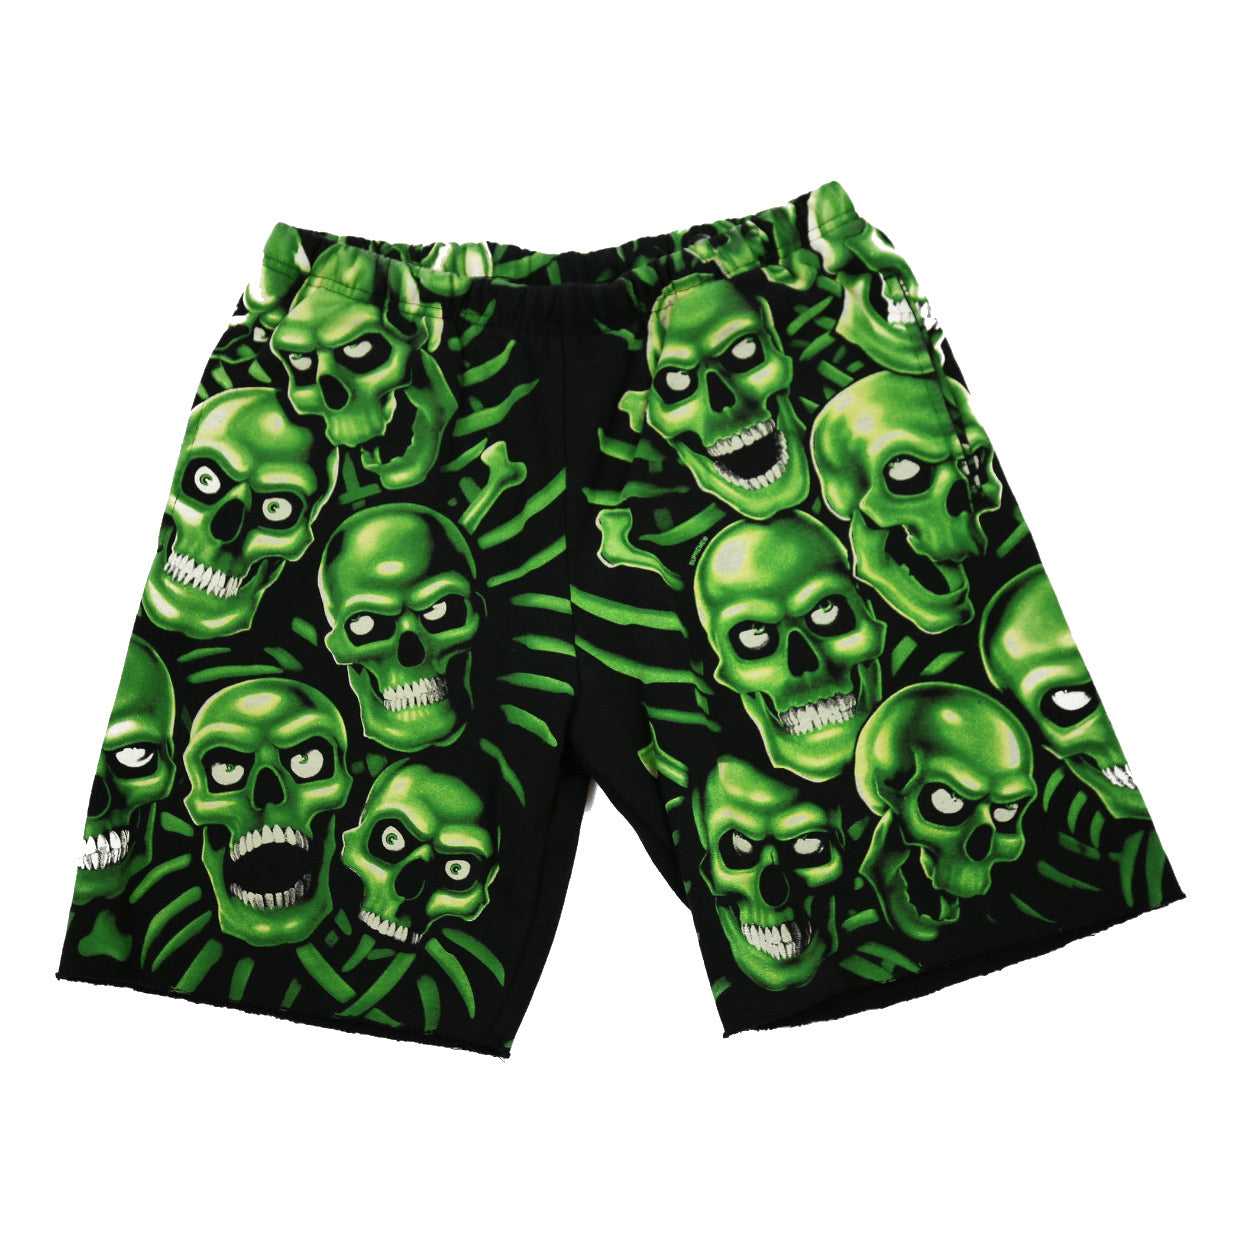 Supreme skeleton shorts